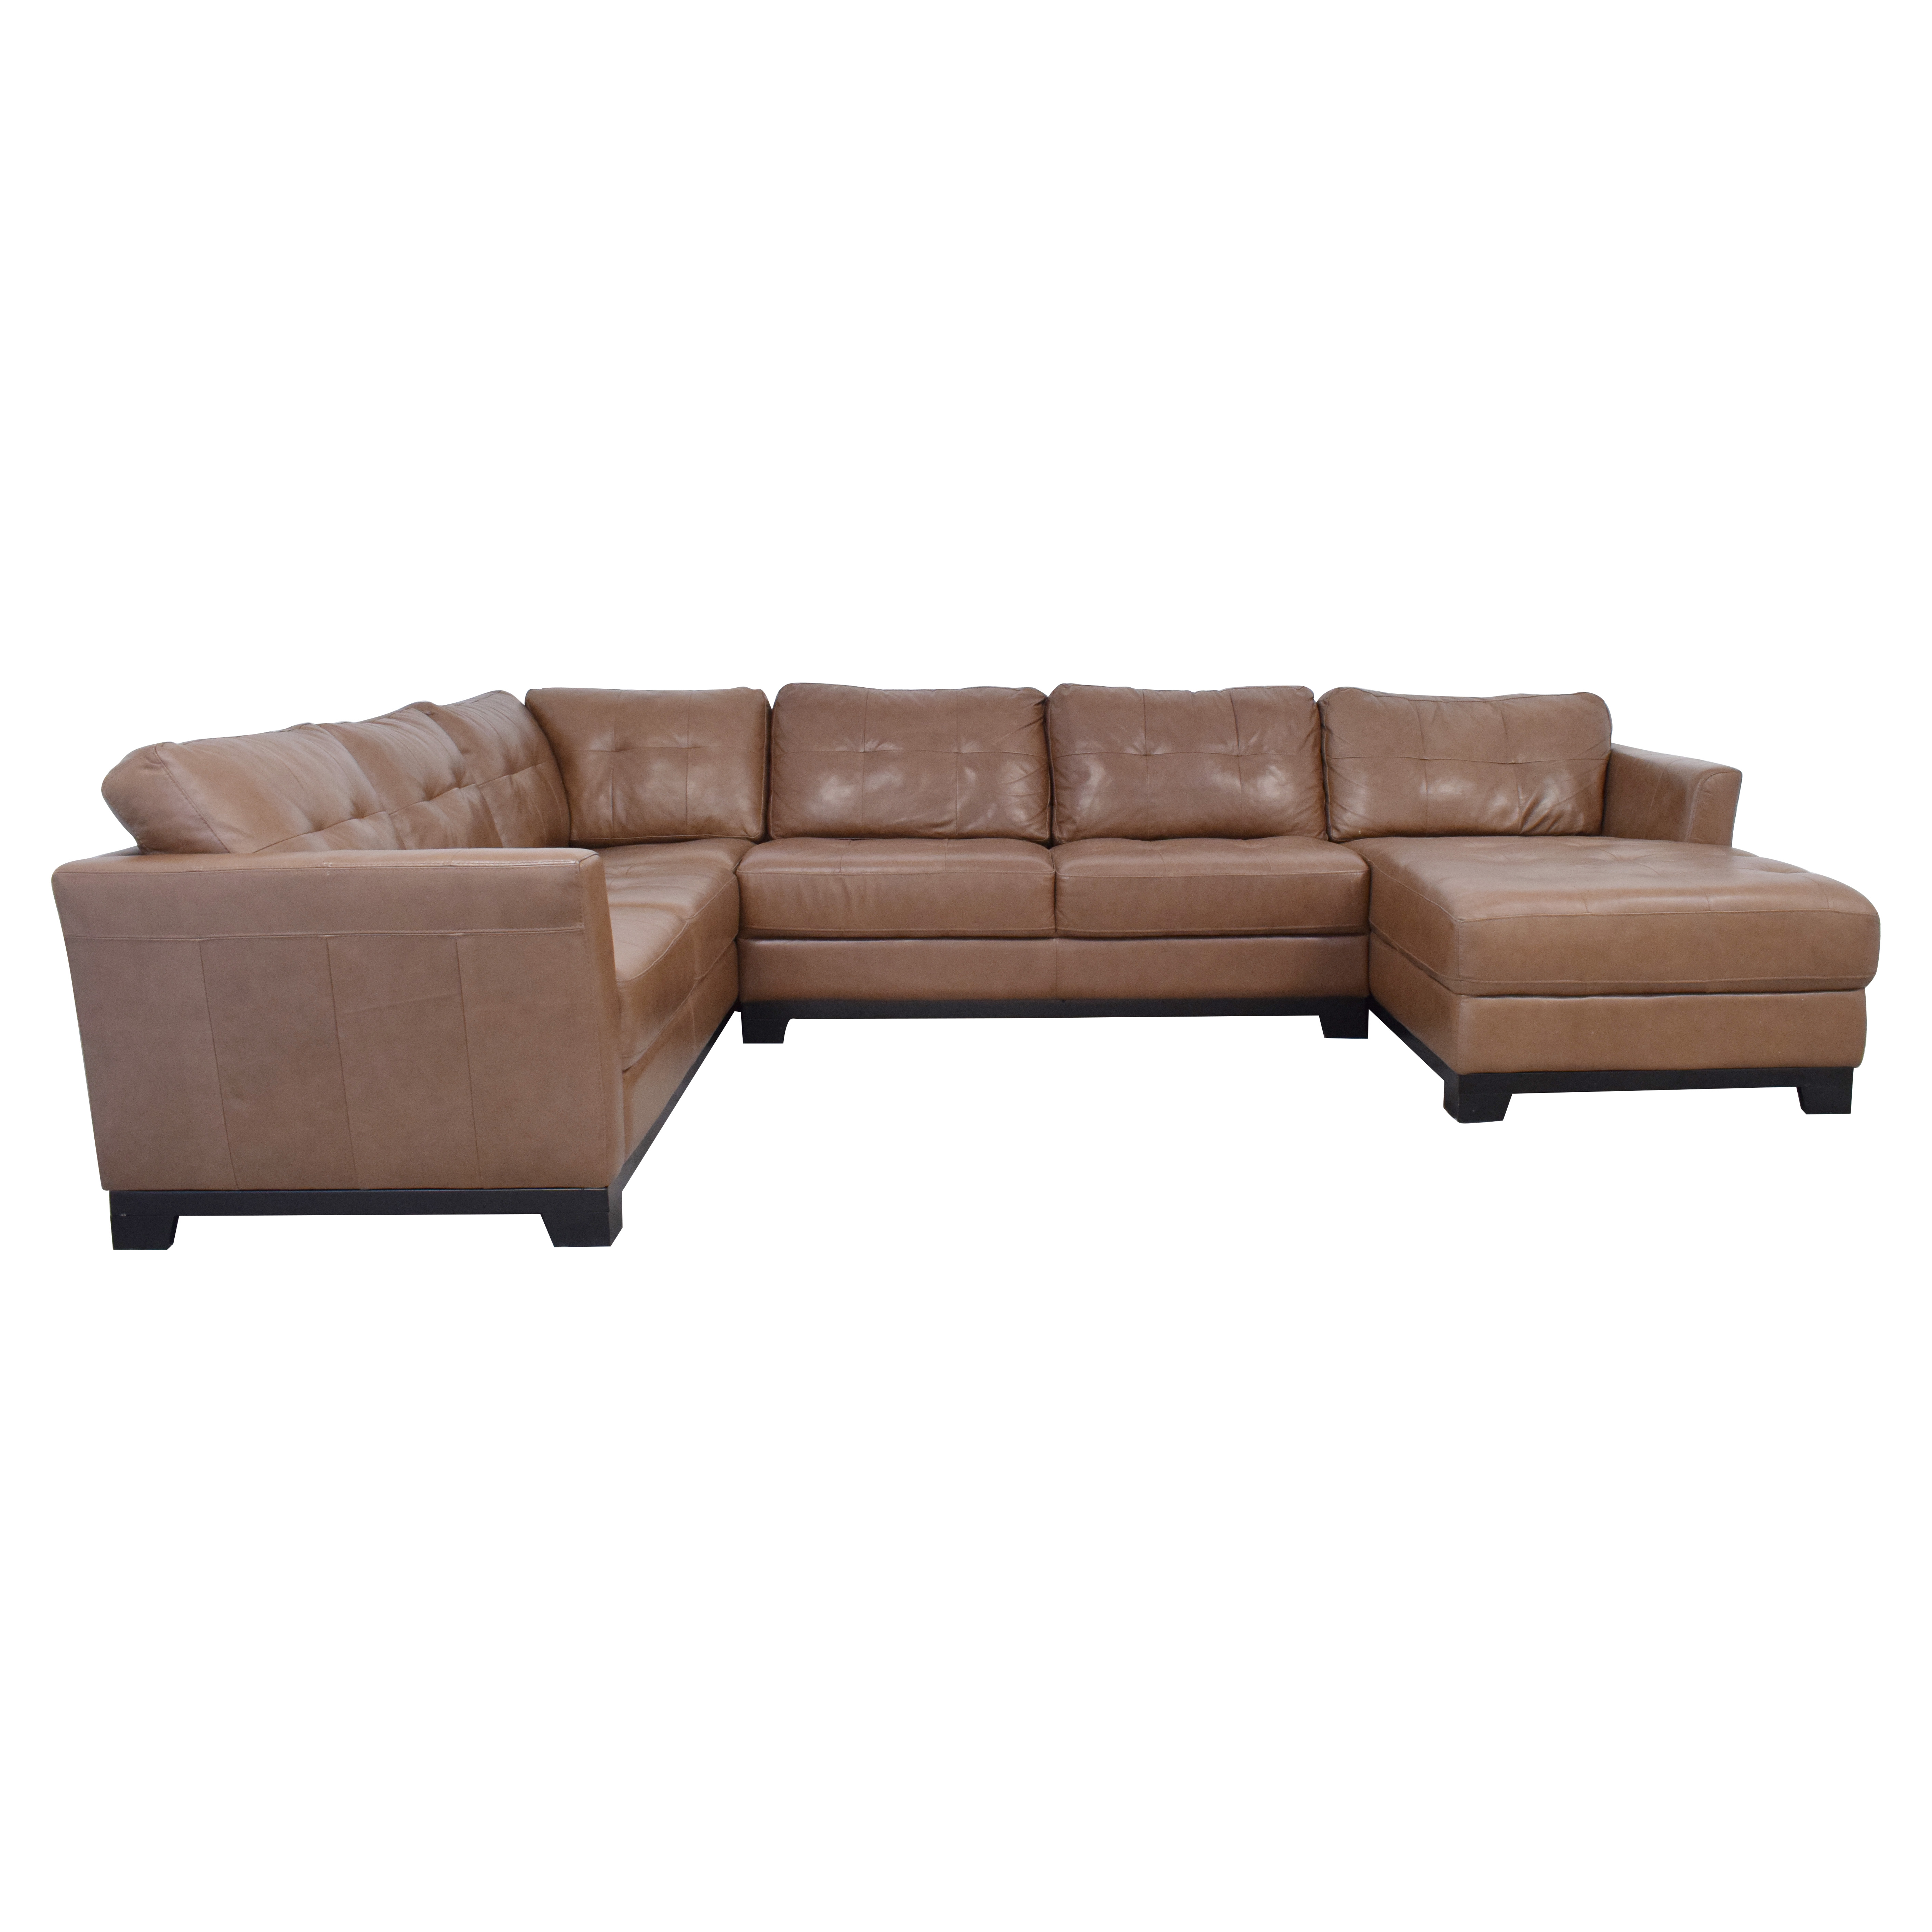 Chateau d'Ax Chateau d'Ax Sectional Sofa with Chaise for sale